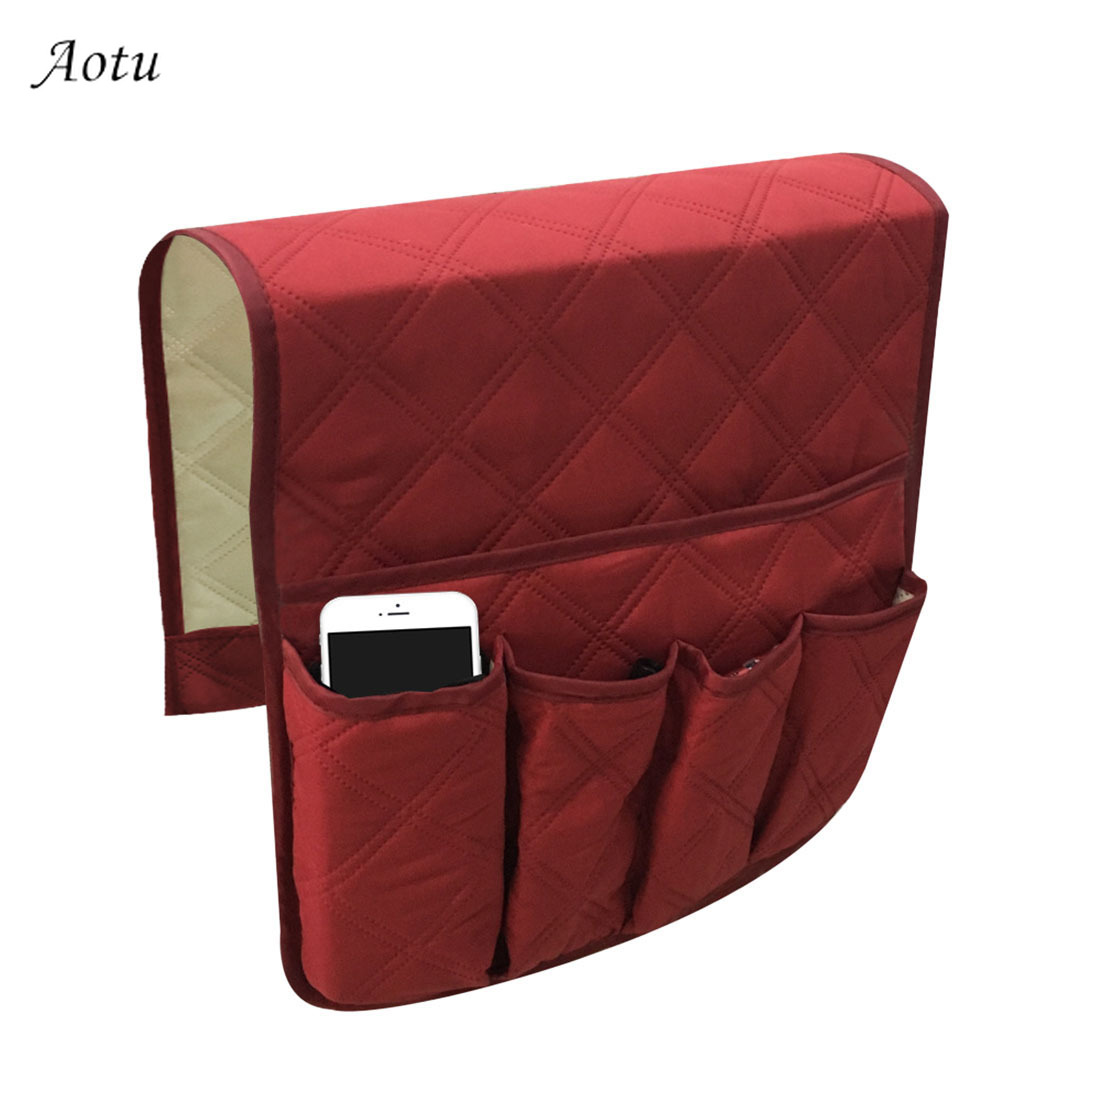 Sofa Storage Bag Use for Game Controller Pens ipad 5